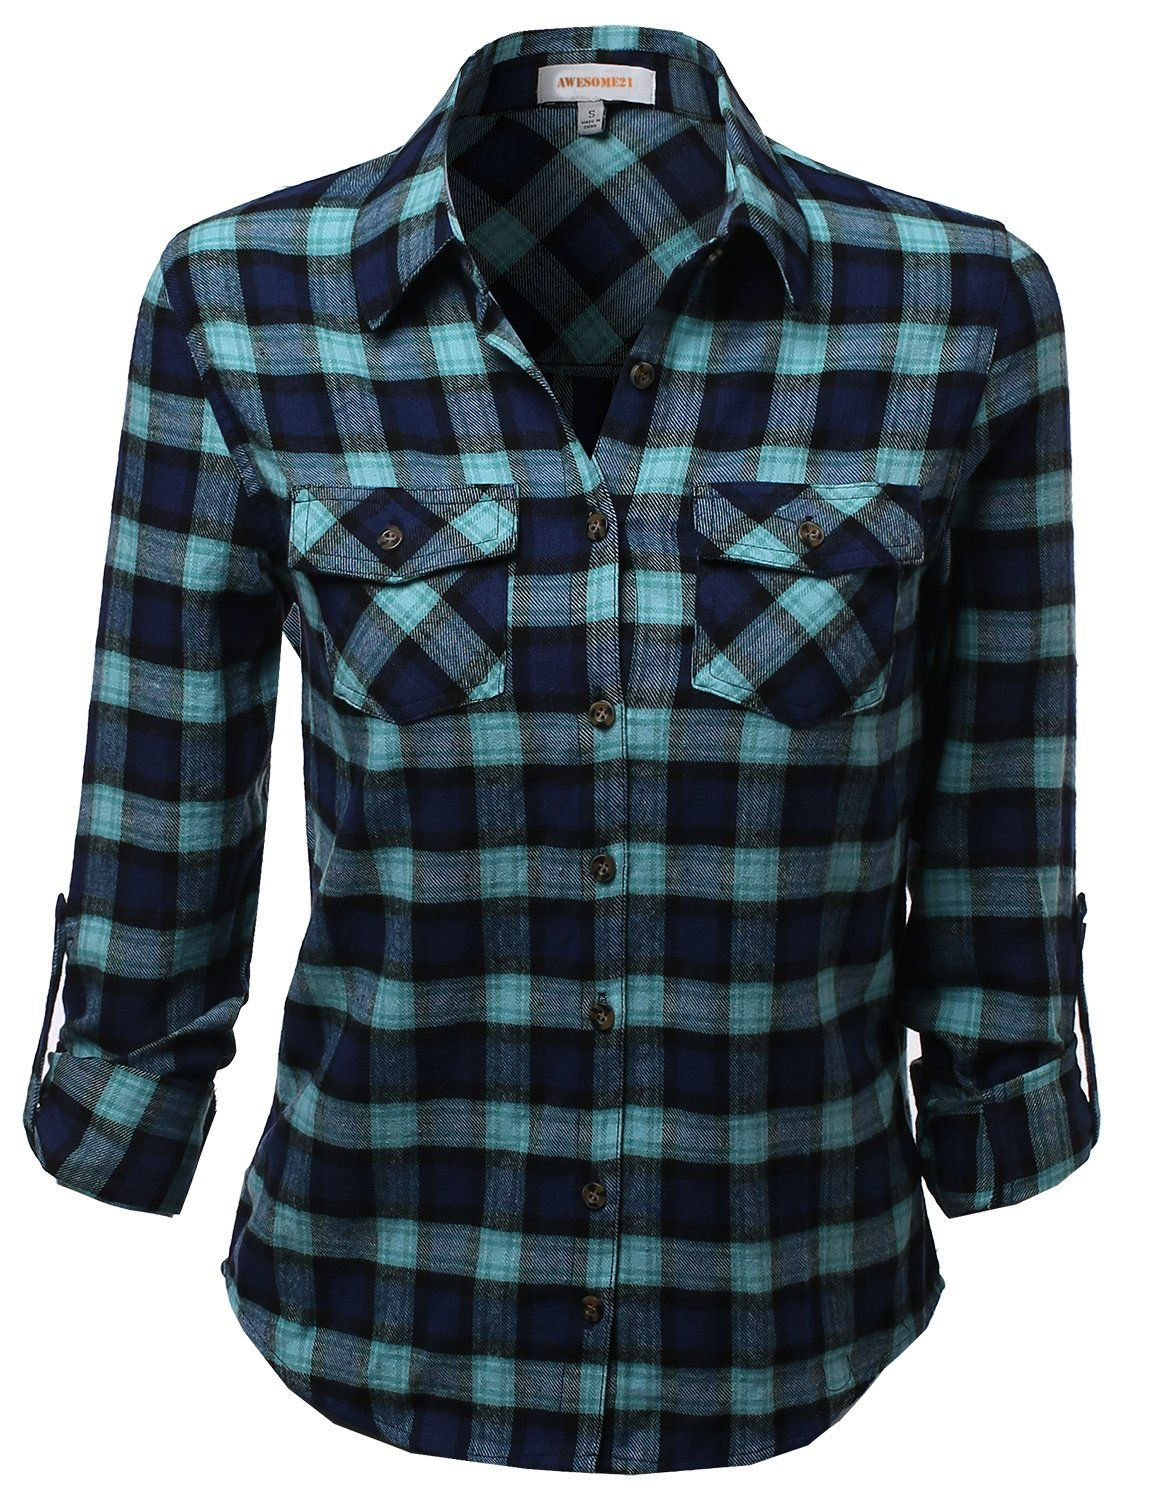 Flannel shirts at kohl's  Flannel Plaid Checker Rolled up Shirts Blouse Top Mint Navy Size M